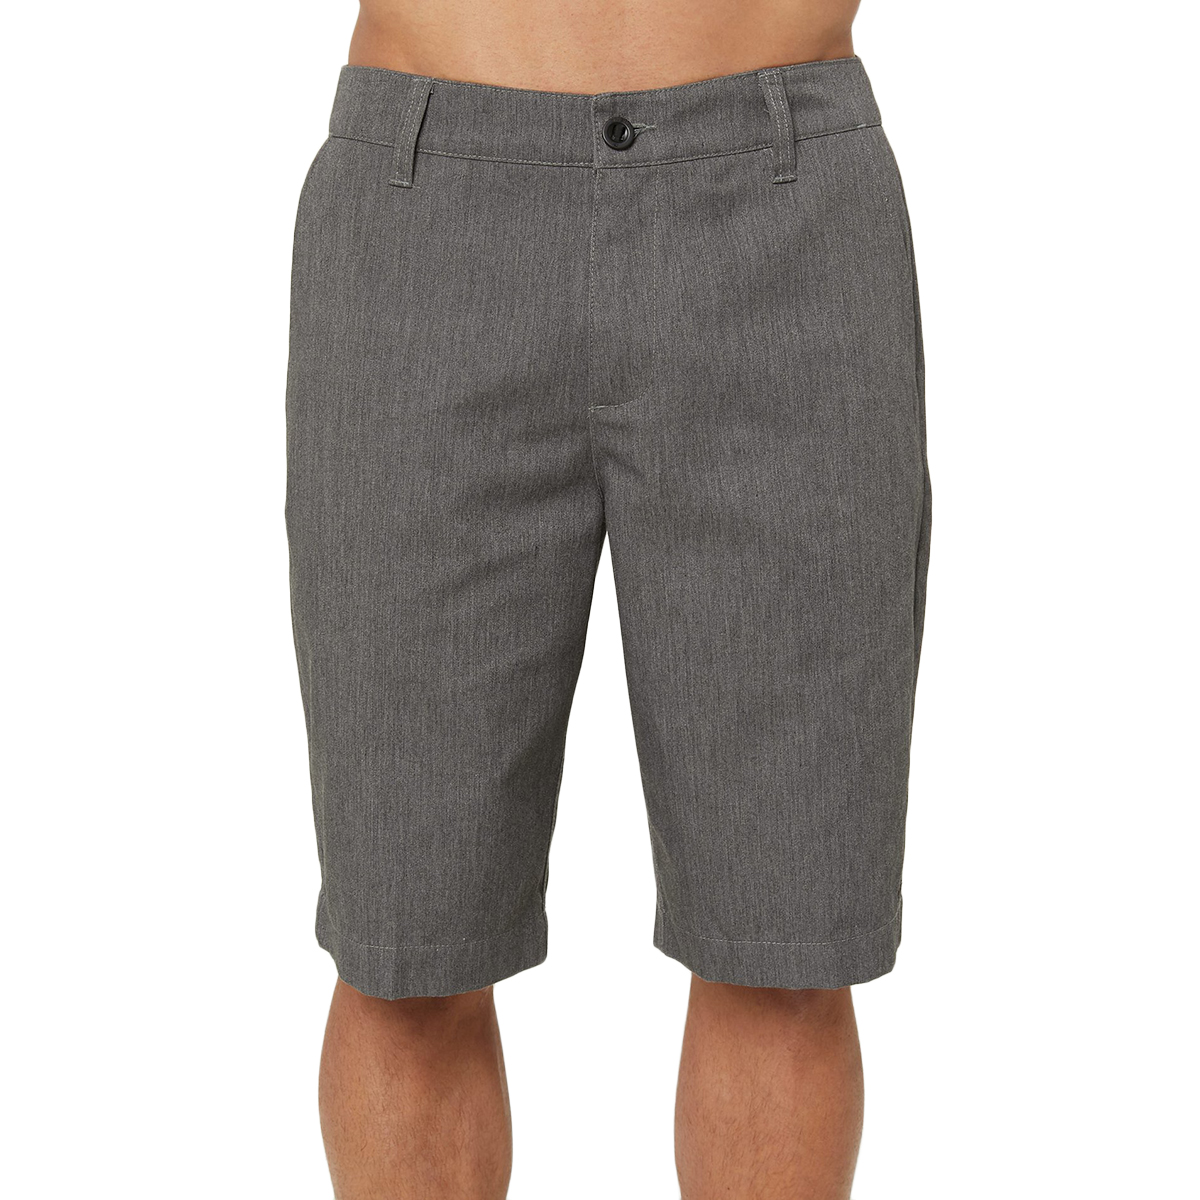 O'neill Men's Redwood Hybrid Short